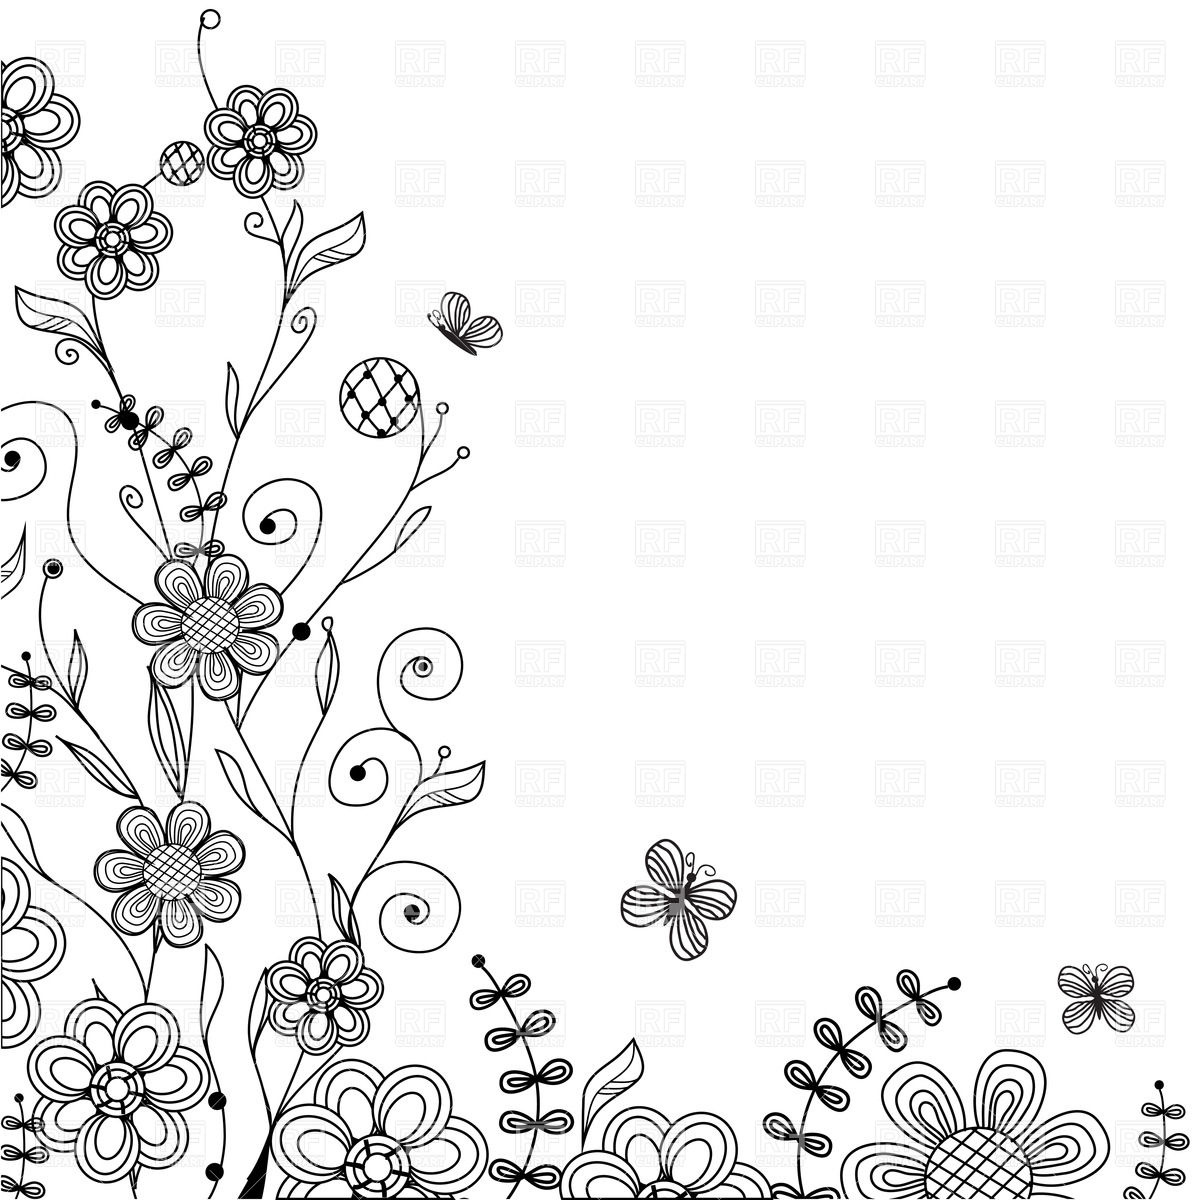 1200x1200 Ornate Floral Corner Vector Image Vector Artwork Of Plants And